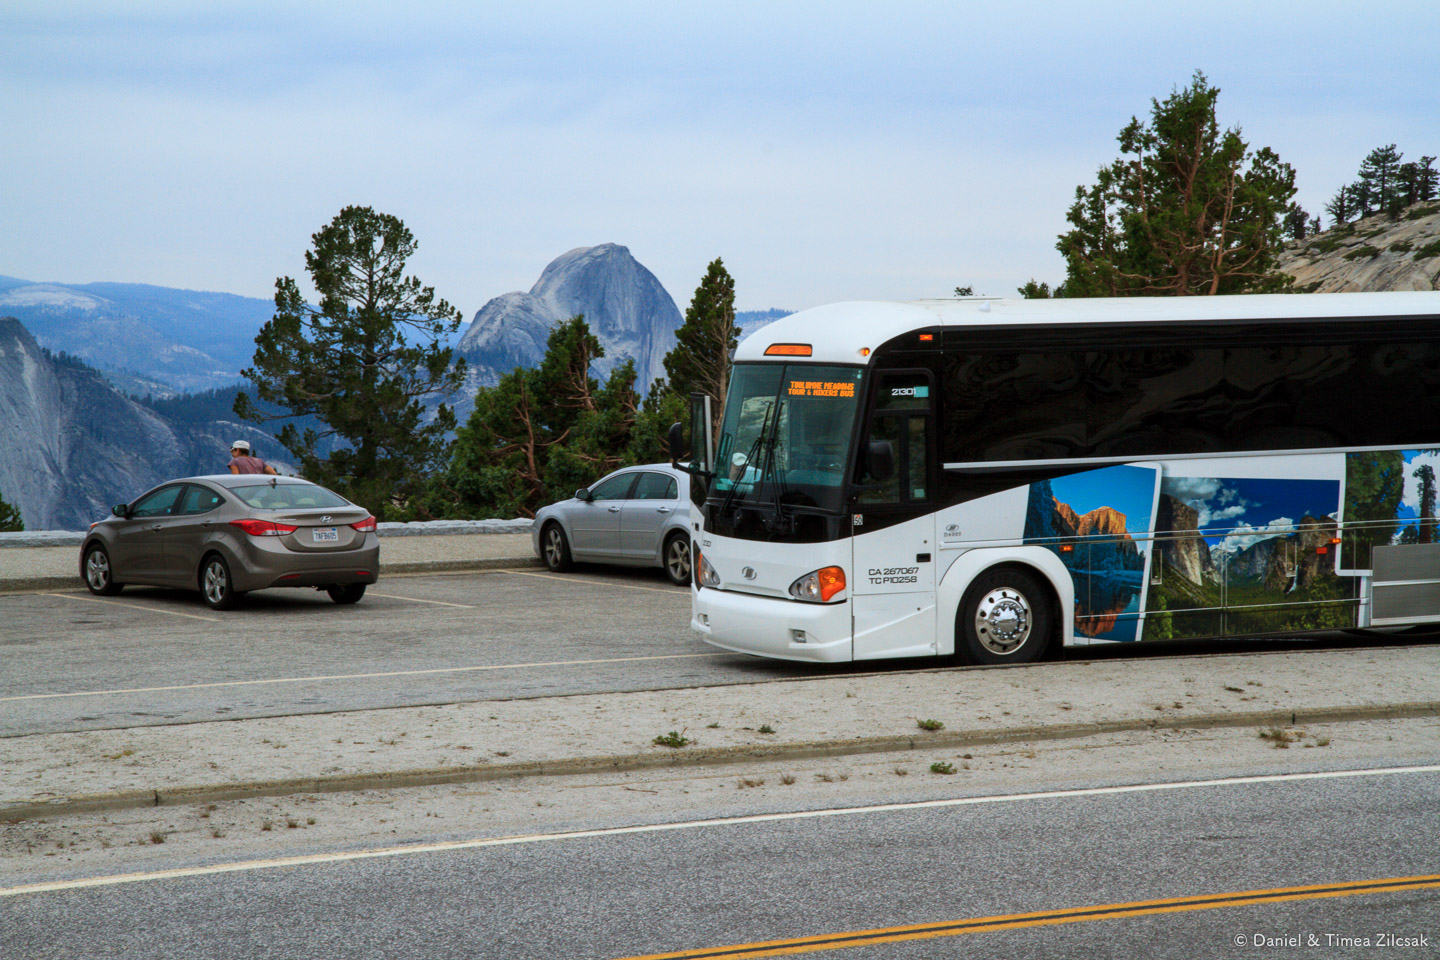 Riding a fancy bus from Yosemite Village to Tuolumne Meadows